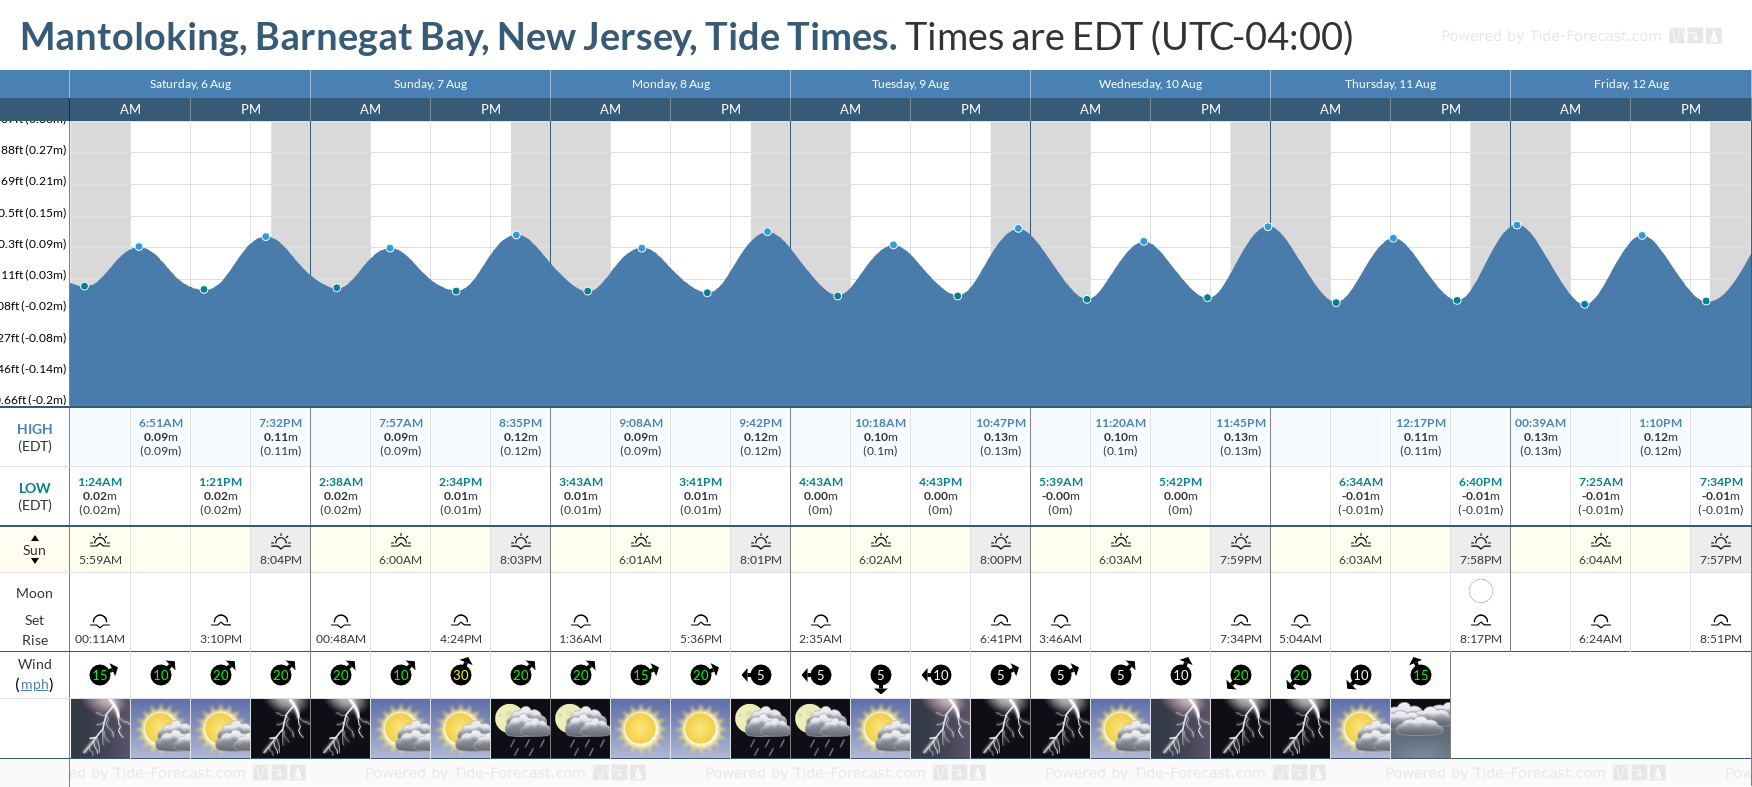 Mantoloking, Barnegat Bay, New Jersey Tide Chart including high and low tide tide times for the next 7 days